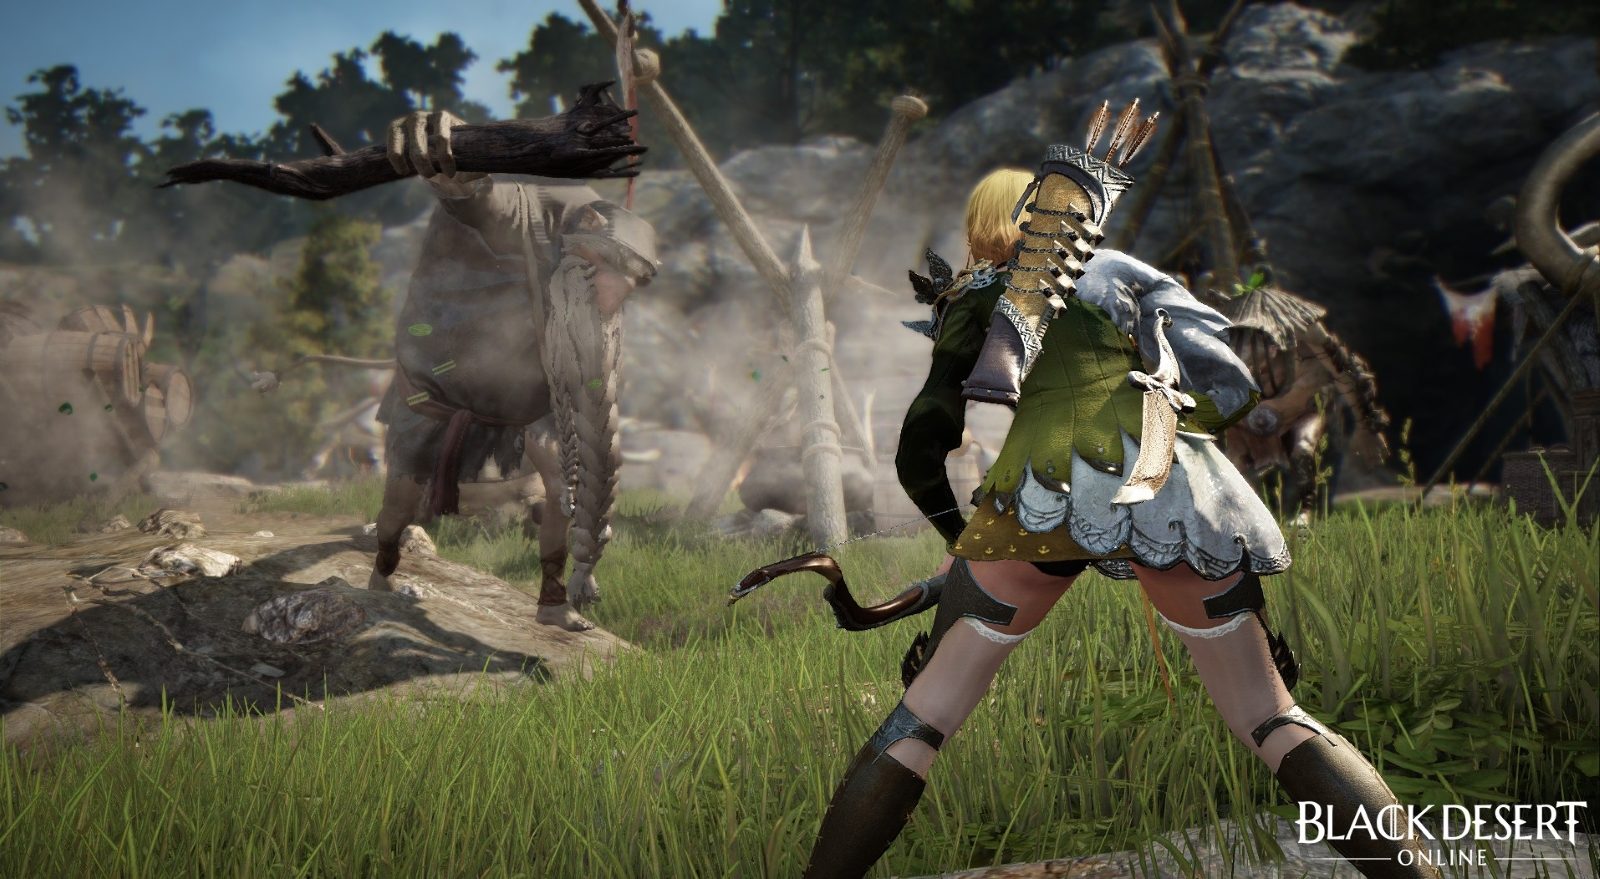 Black Desert Online Second Closed Beta Date Revealed video thumbnail